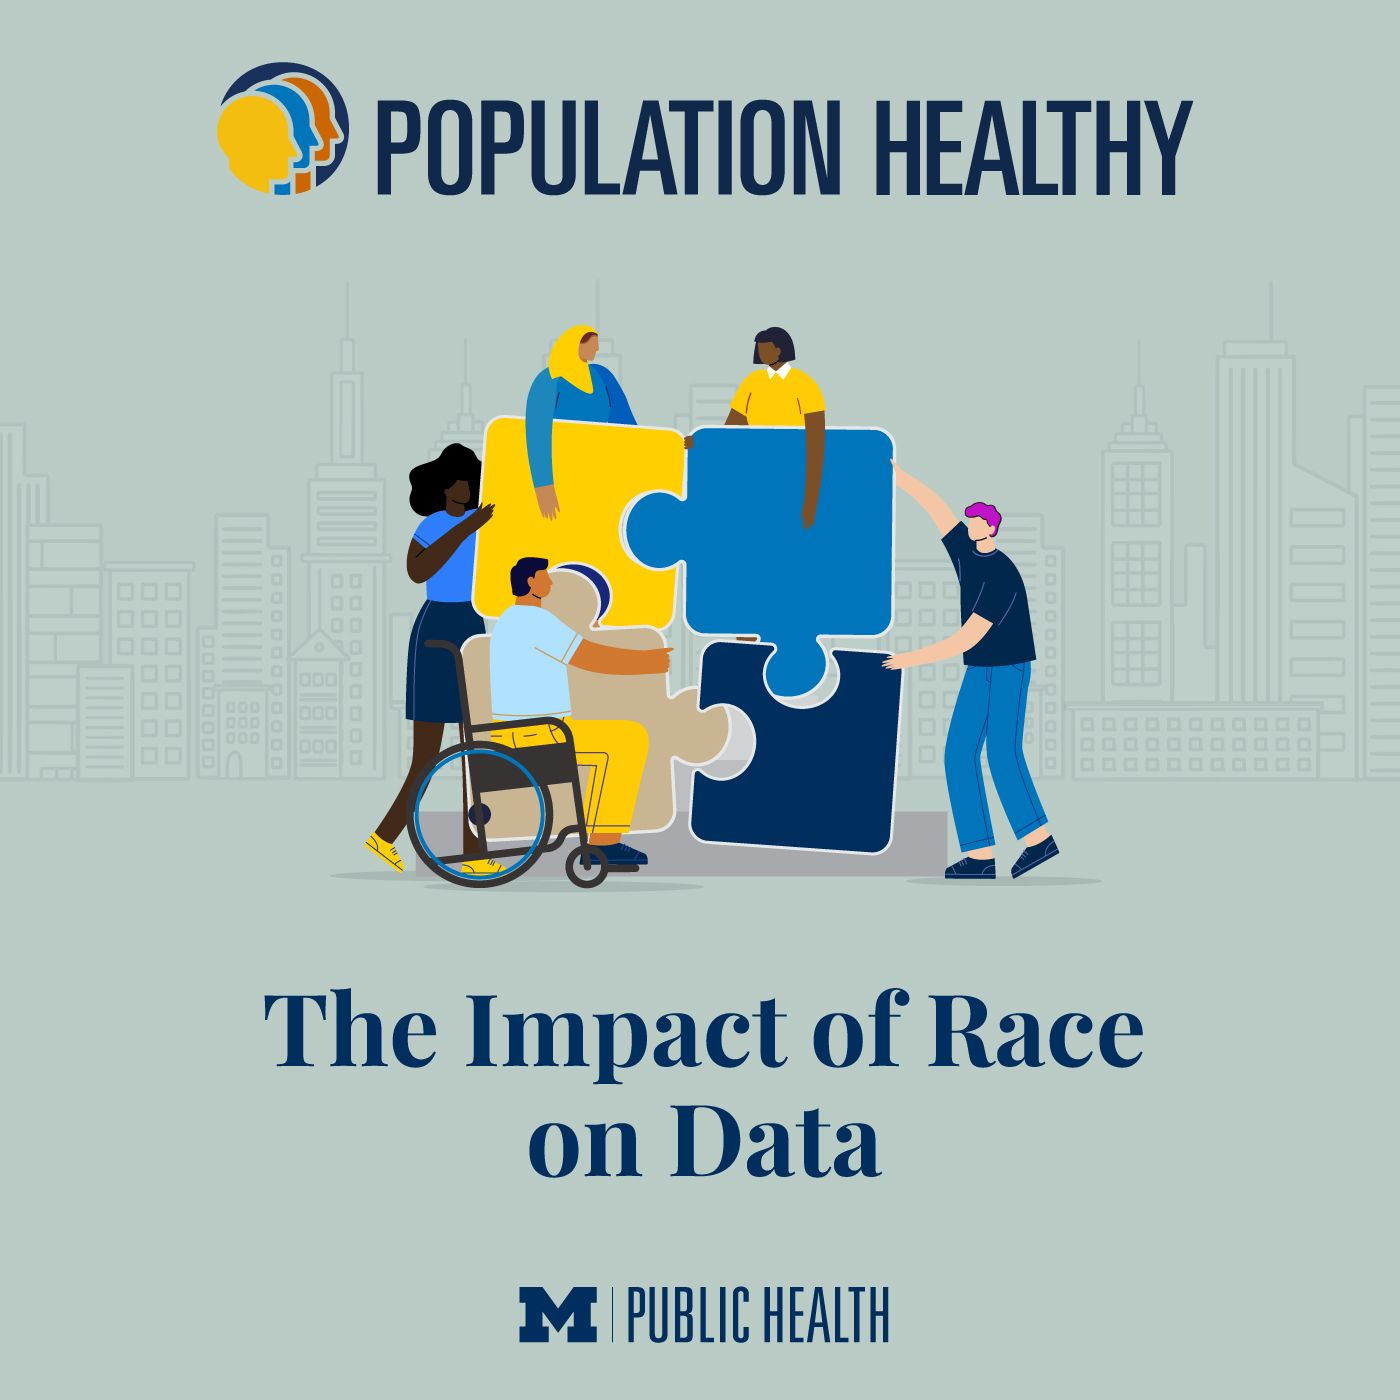 The Impact of Race on Data